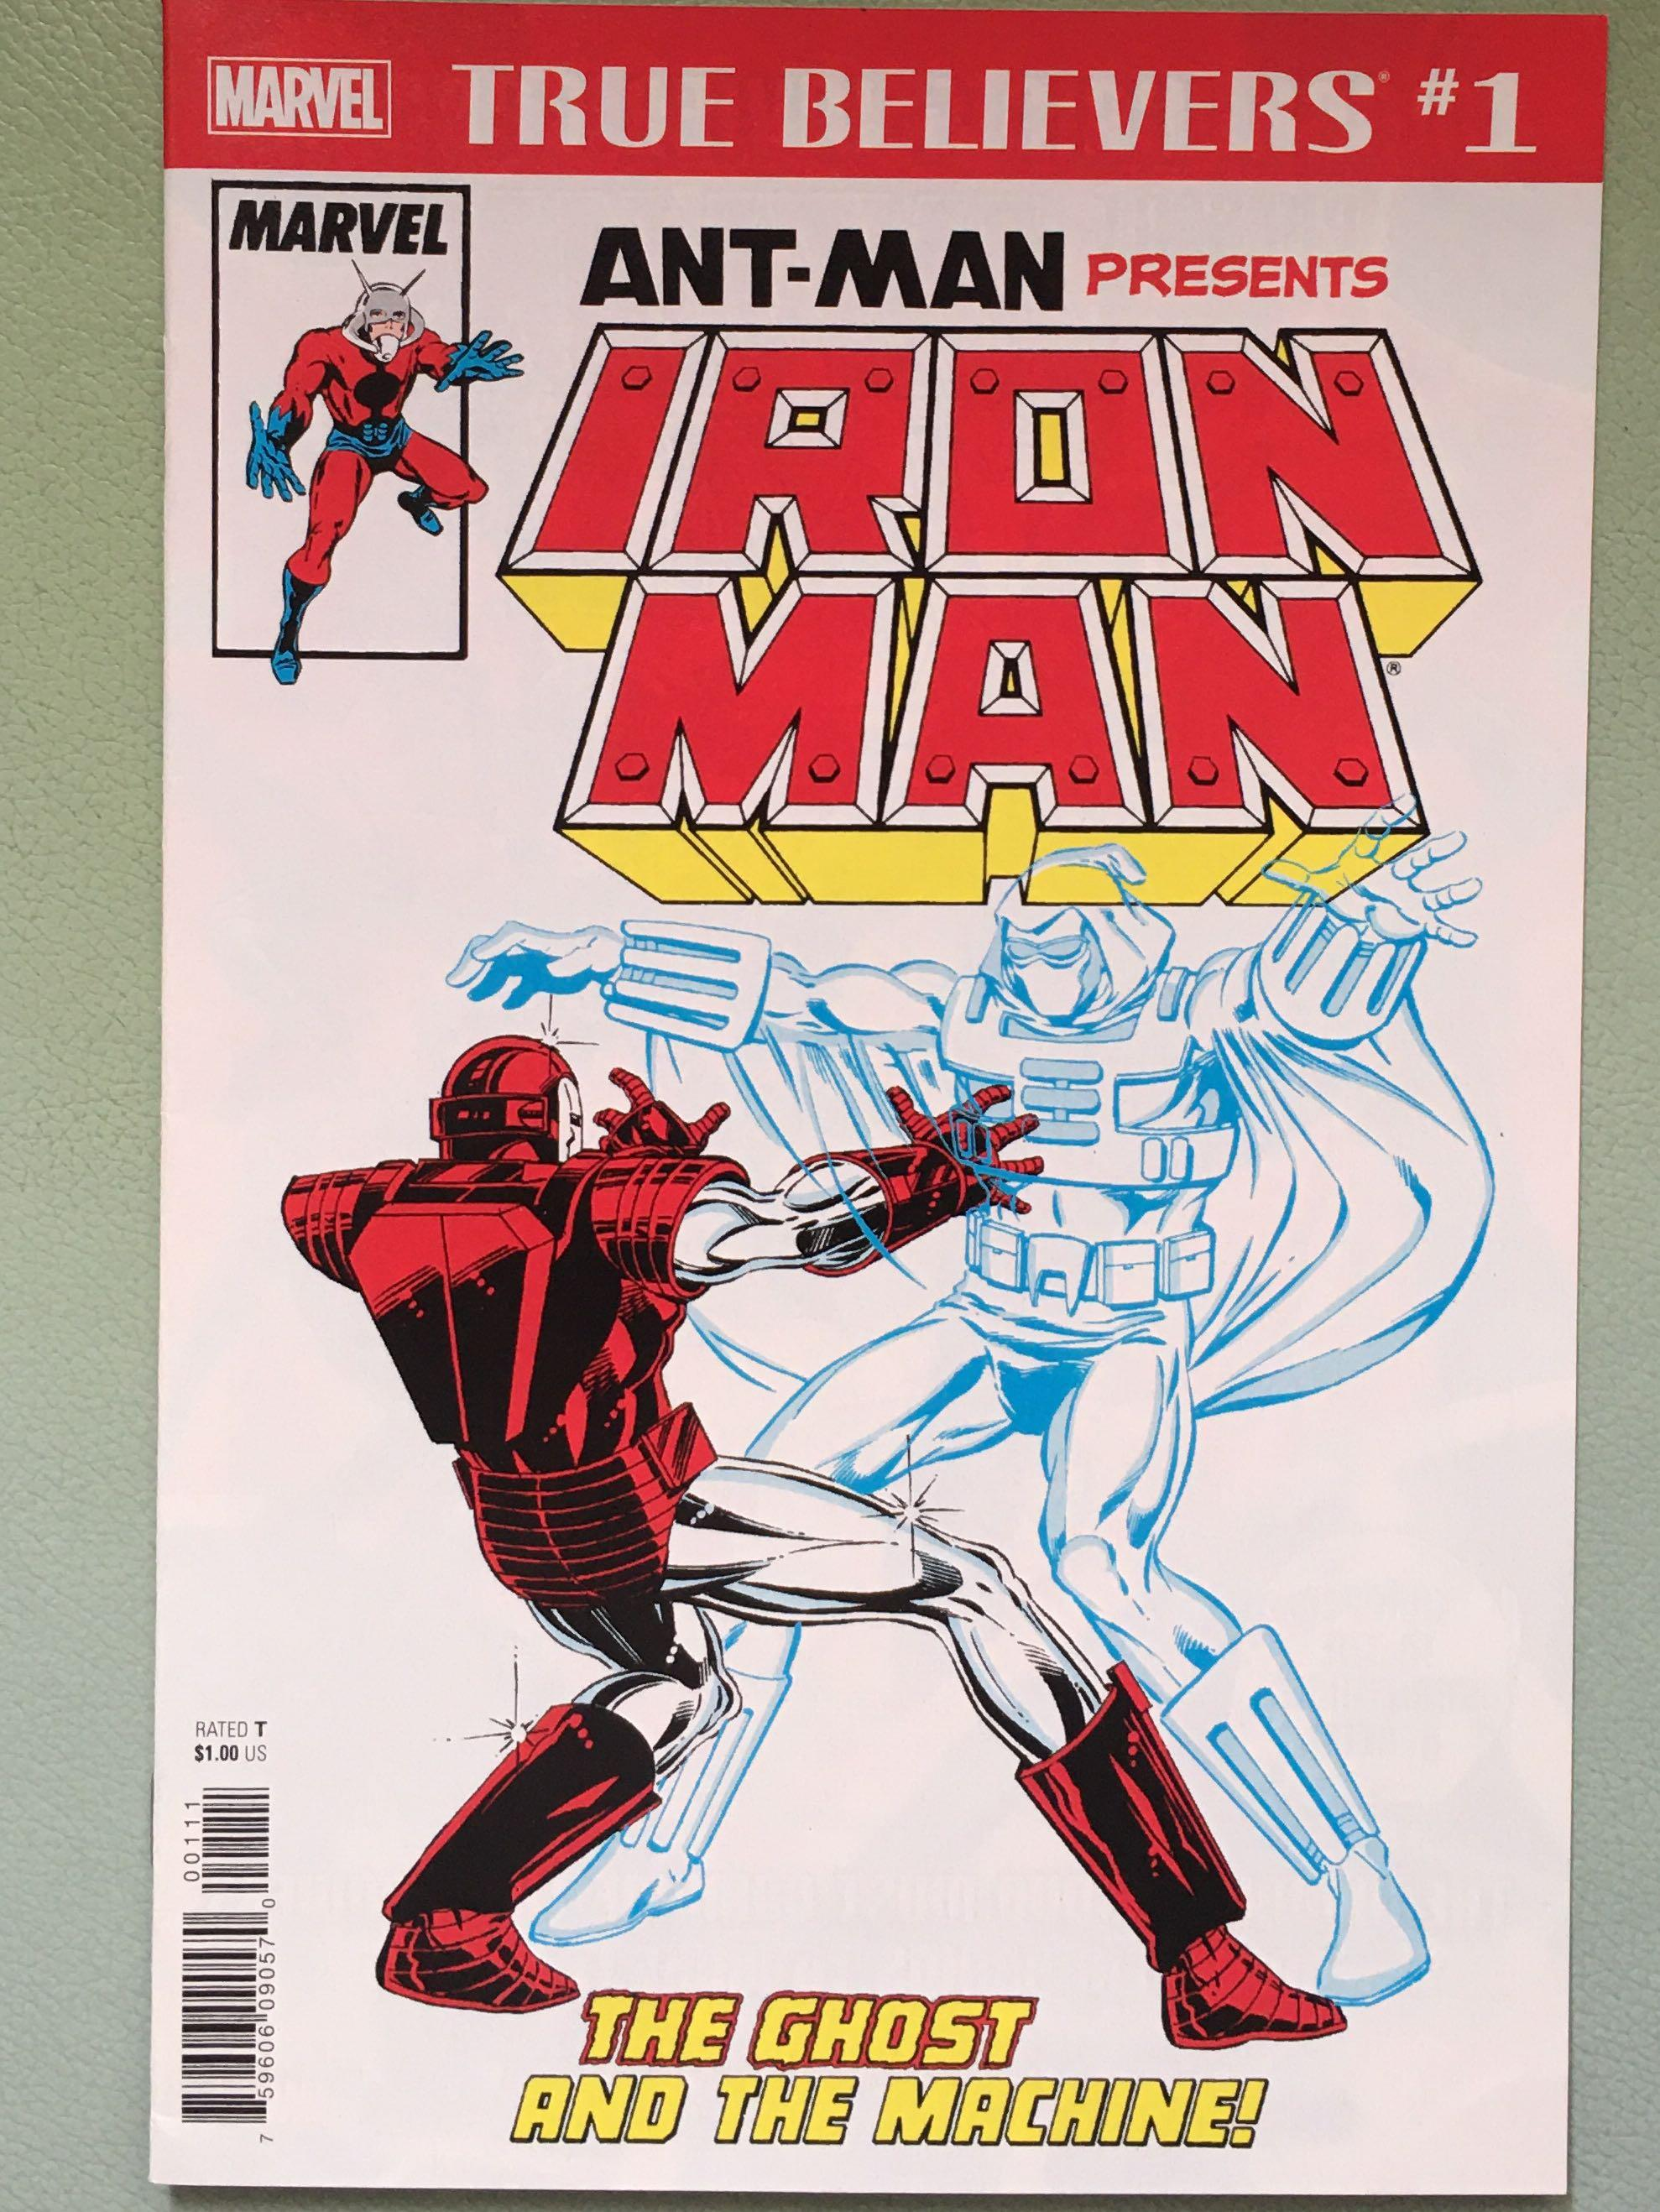 Ant-Man presents IRON MAN: The GHOST and the Machine_Marvel Comics